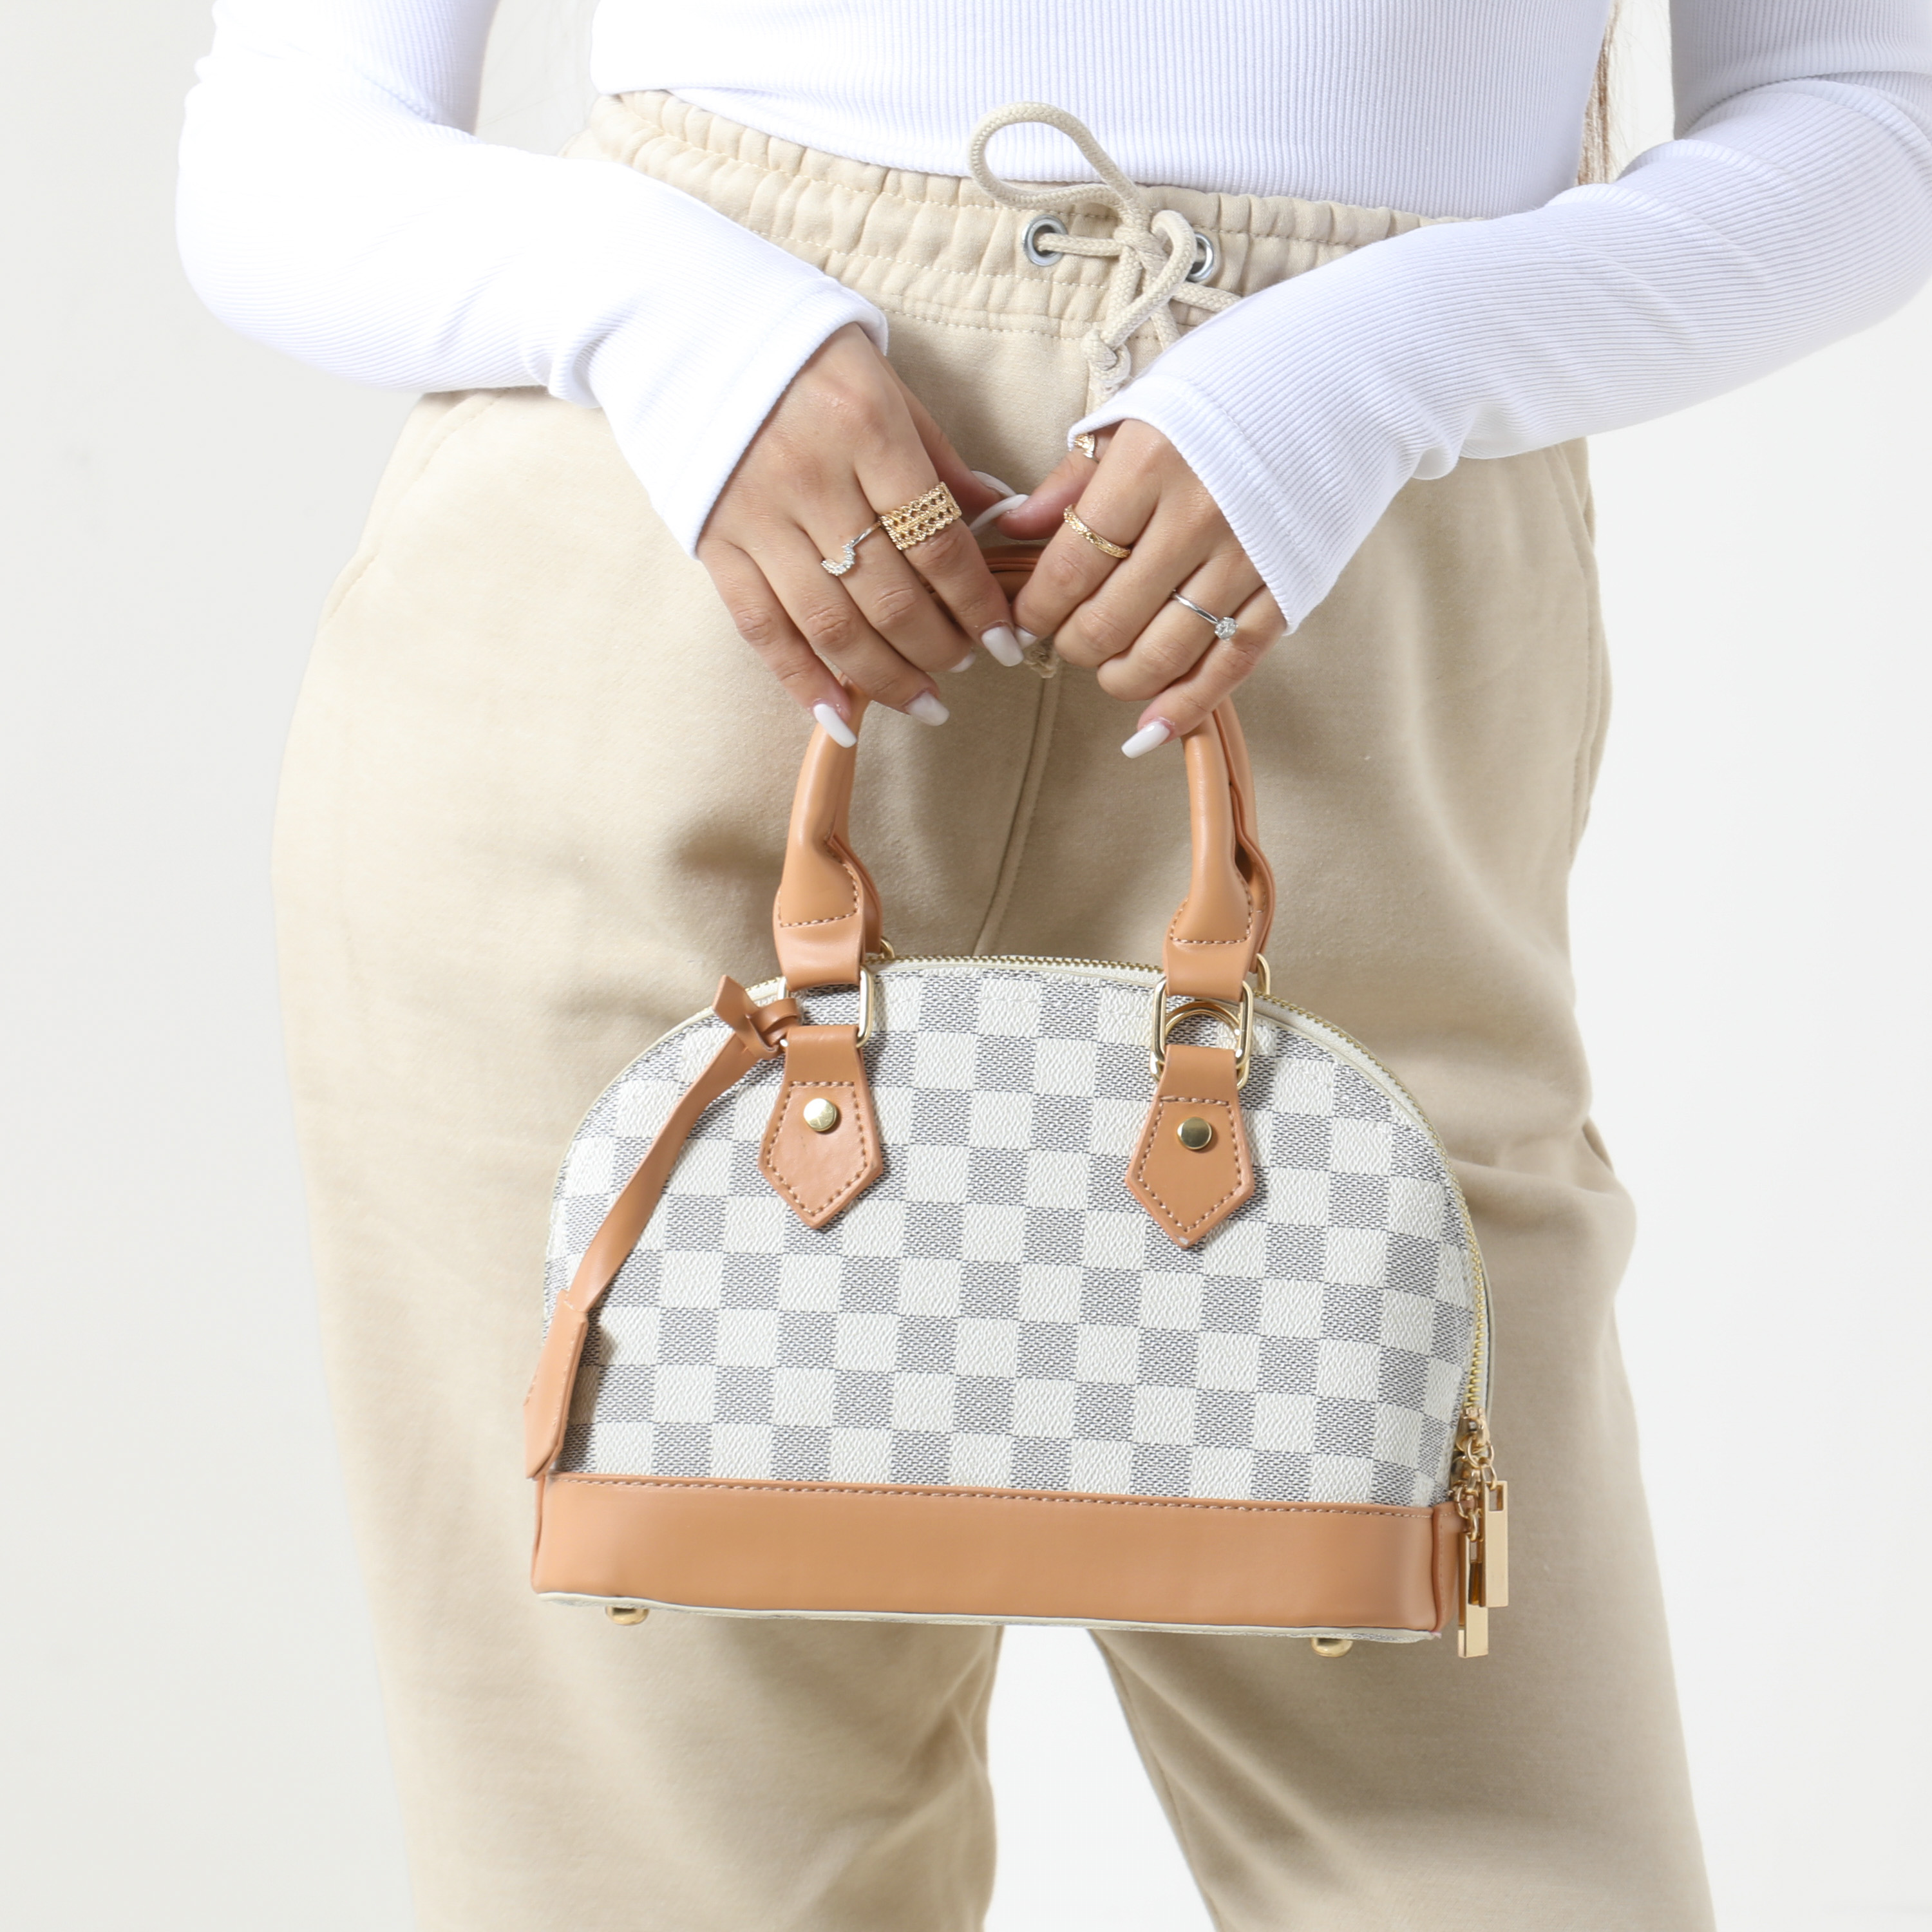 Checked Oval Handbag In Nude Faux Leather